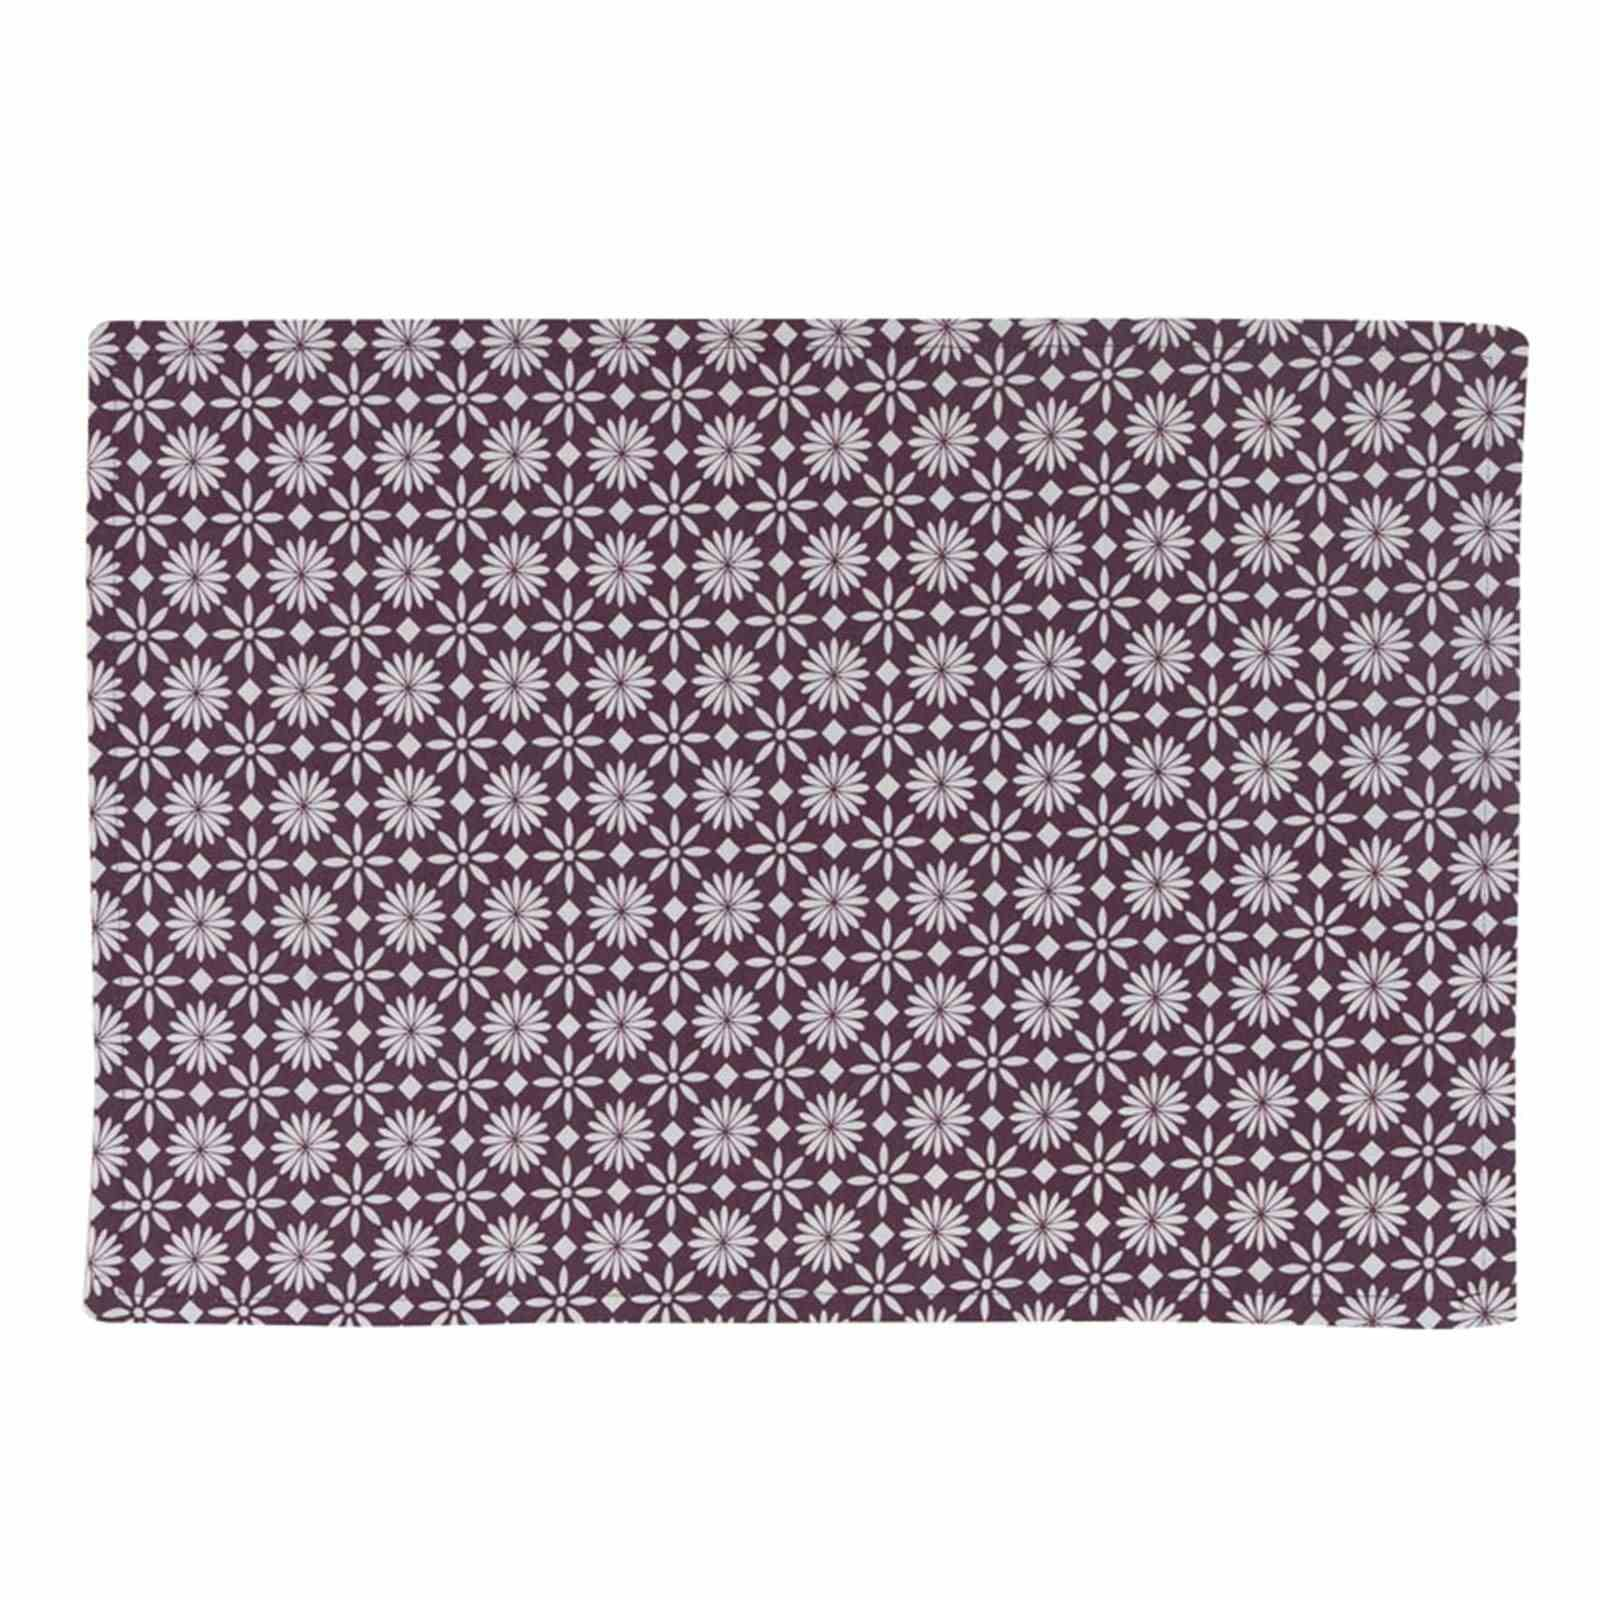 Alexandre turpault flore set de table violet brandalley for Set de table violet